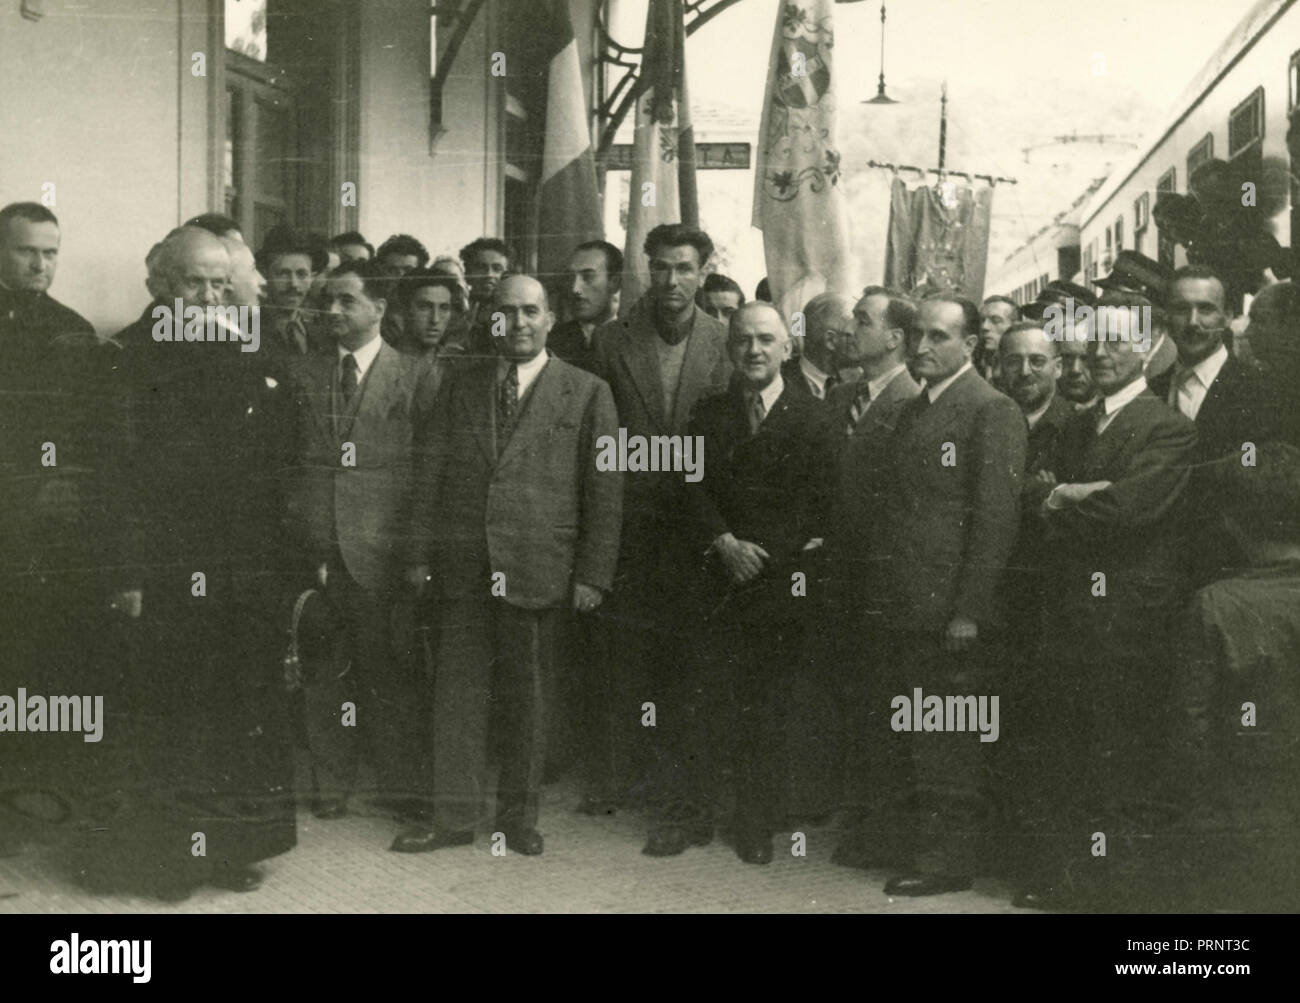 Unidentified gathering of people, Italy 1930s - Stock Image